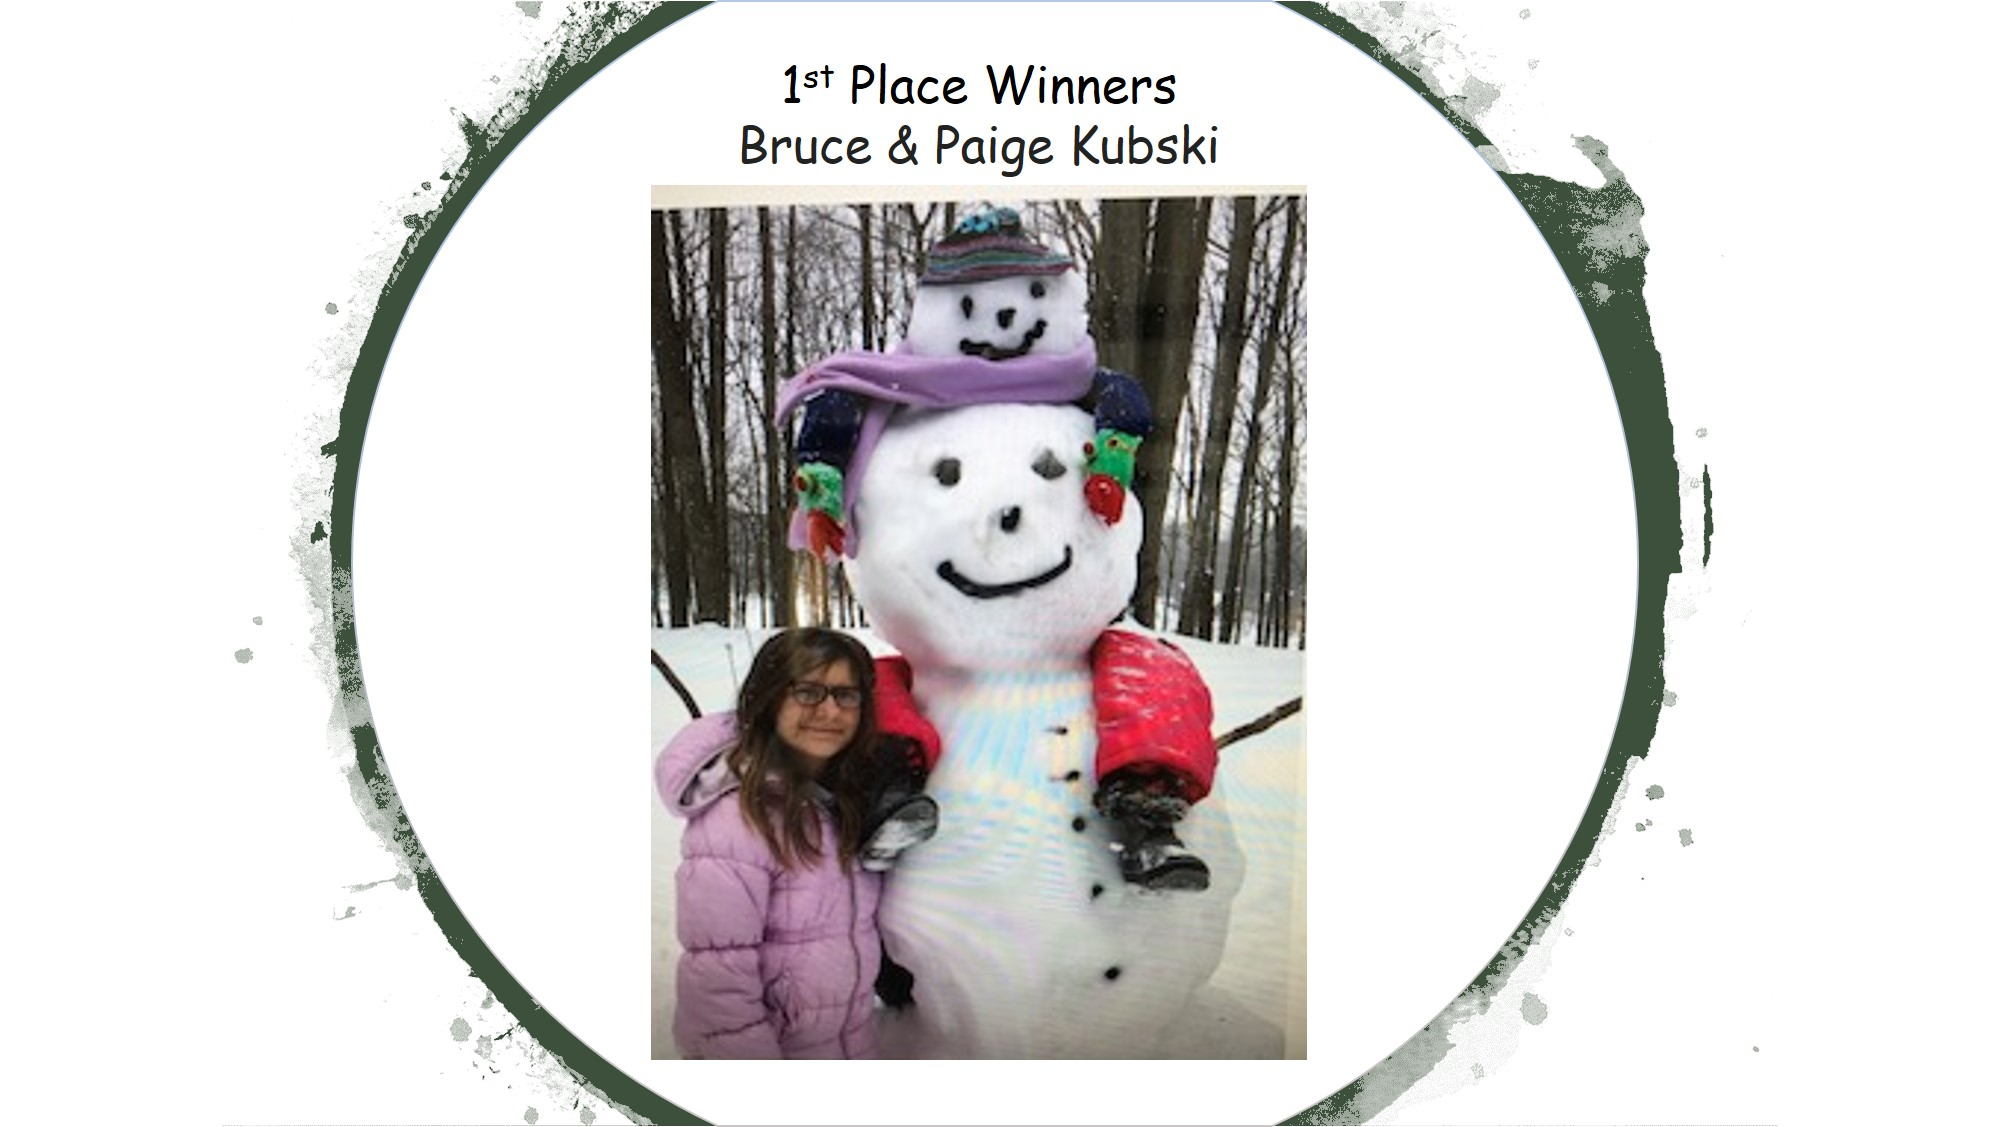 Snow Sculpture 1stPlaceWinners